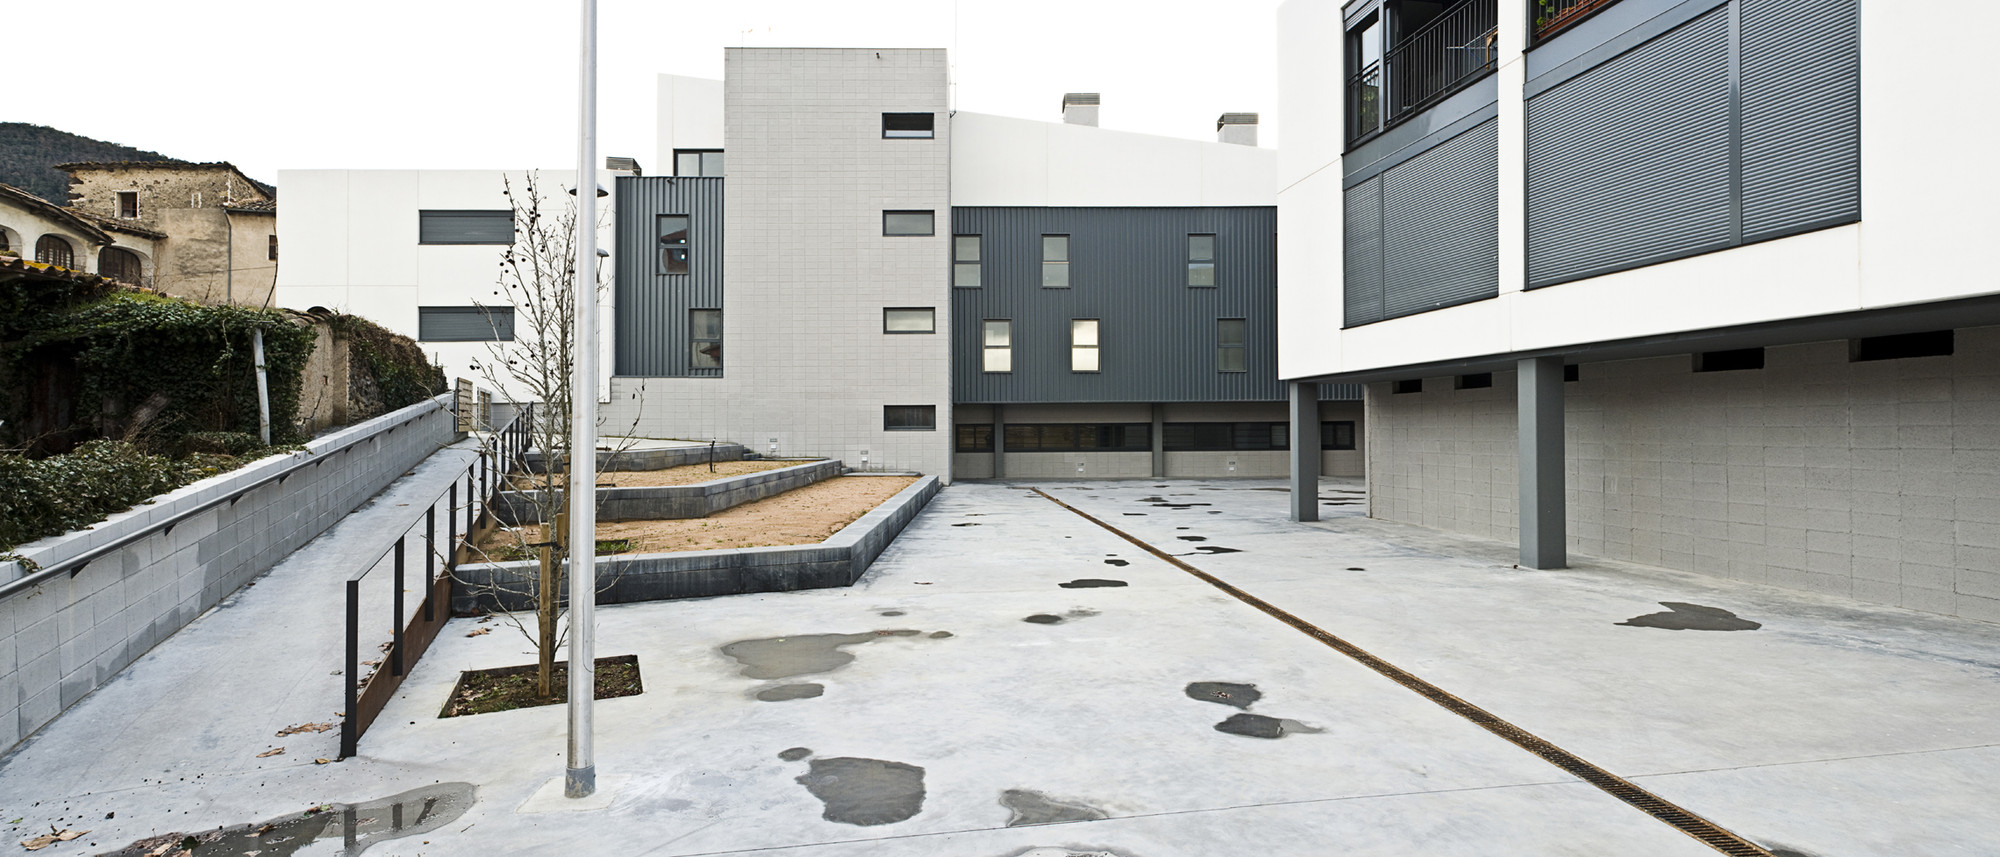 Buidling for 37 Apartments and a Primary Health Care Centre in Les Preses / LEP Arquitectura + XCM Arquitectura